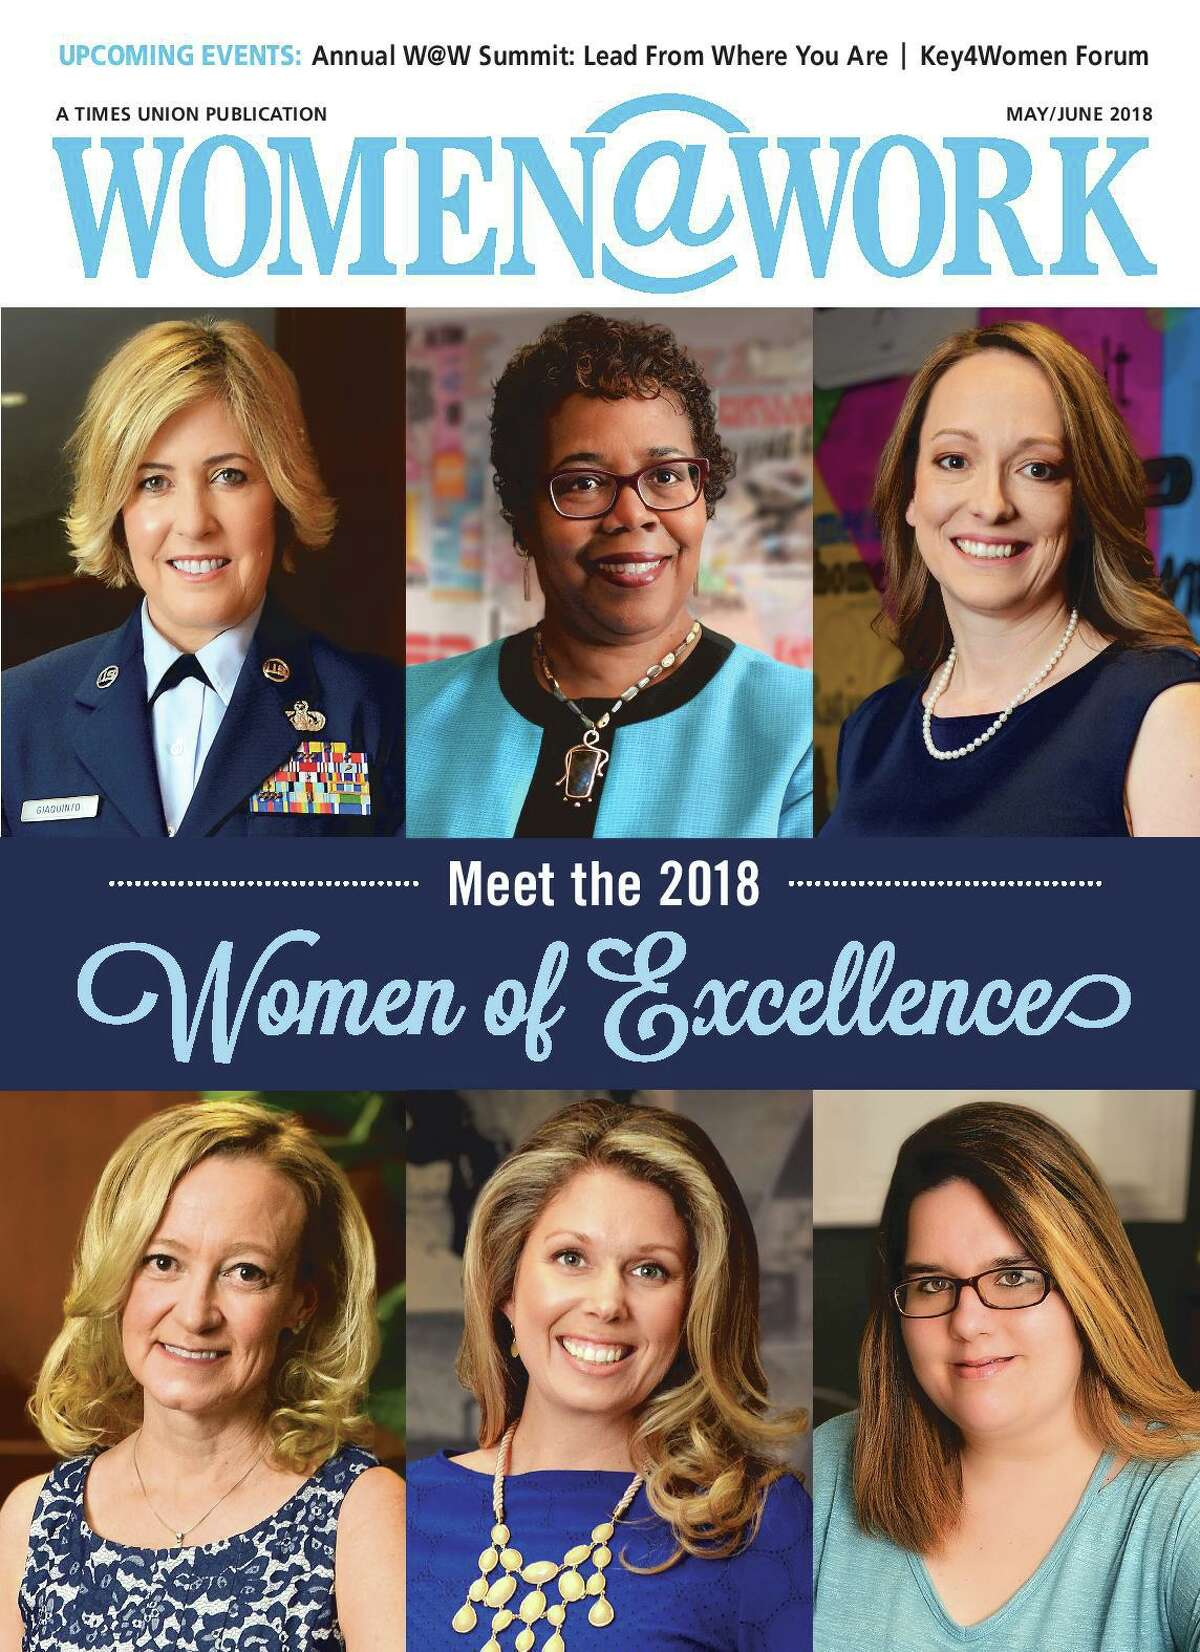 The 2018 Women of Excellence cover of Women@Work, featuring Gretchel Hathaway (top center).